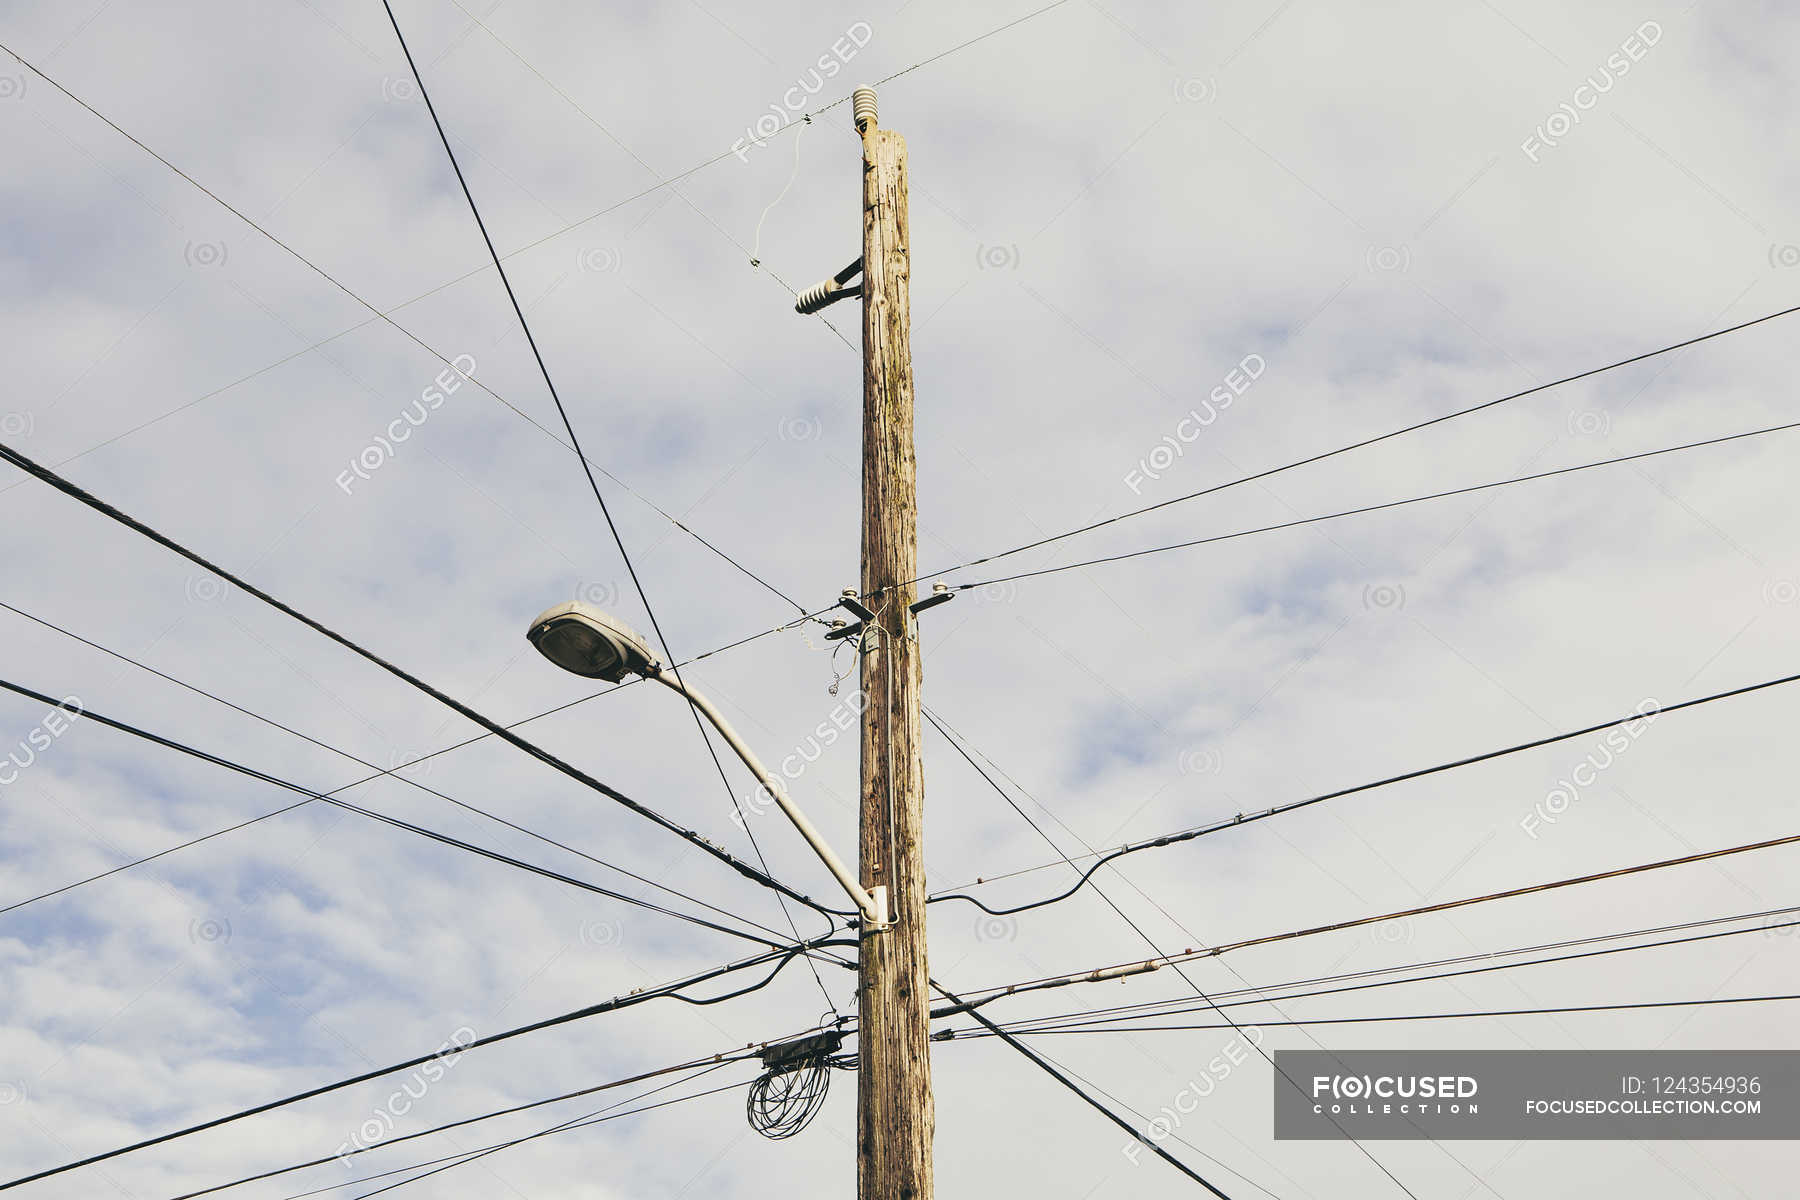 Telephone pole and wires — Stock Photo | #124354936